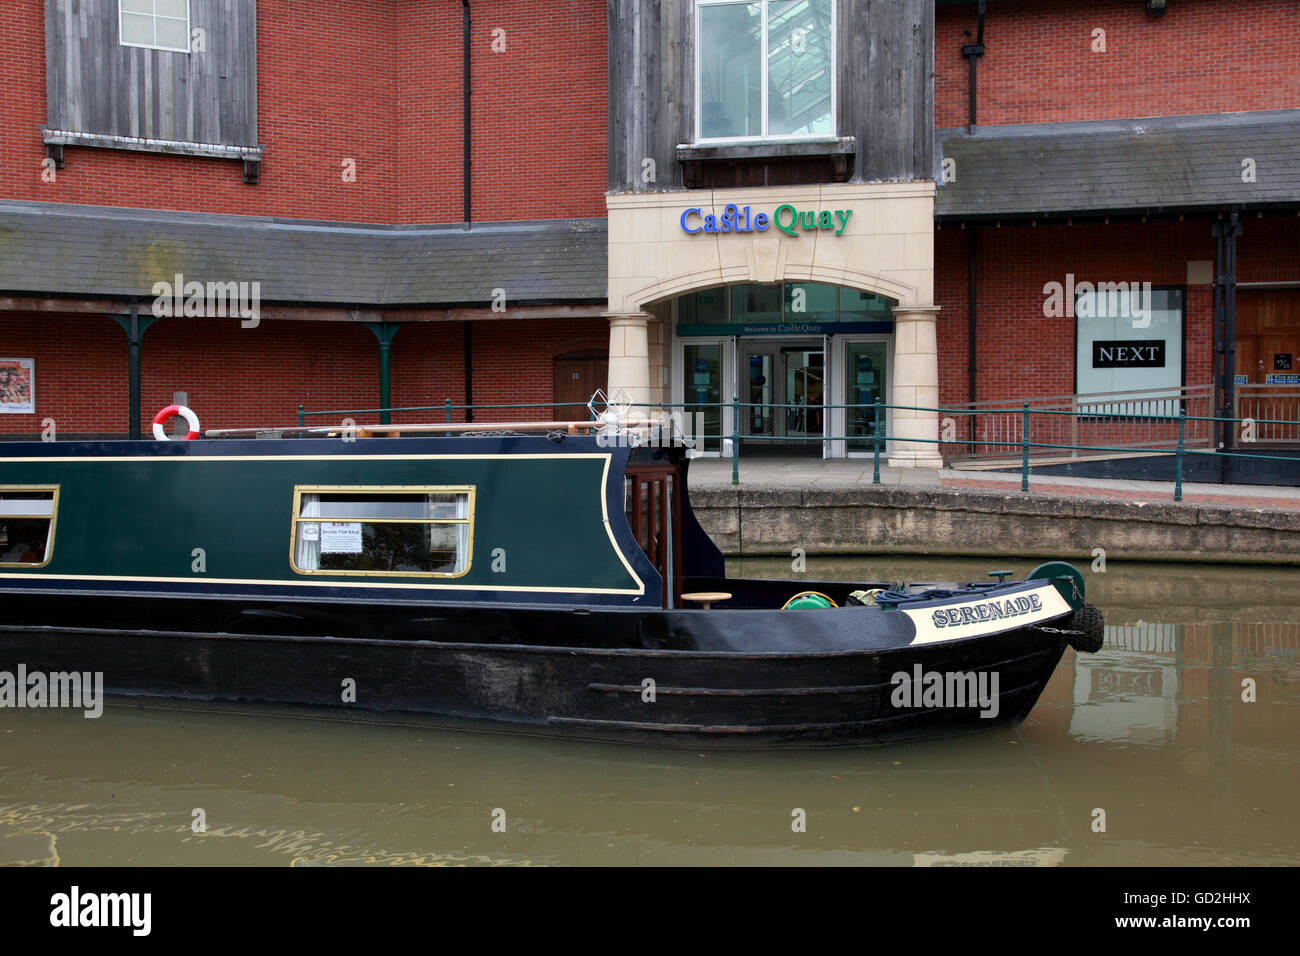 A narrowboat next to Banbury Lock on the Oxford Canal in front of the Castle Quay shopping centre. - Stock Image